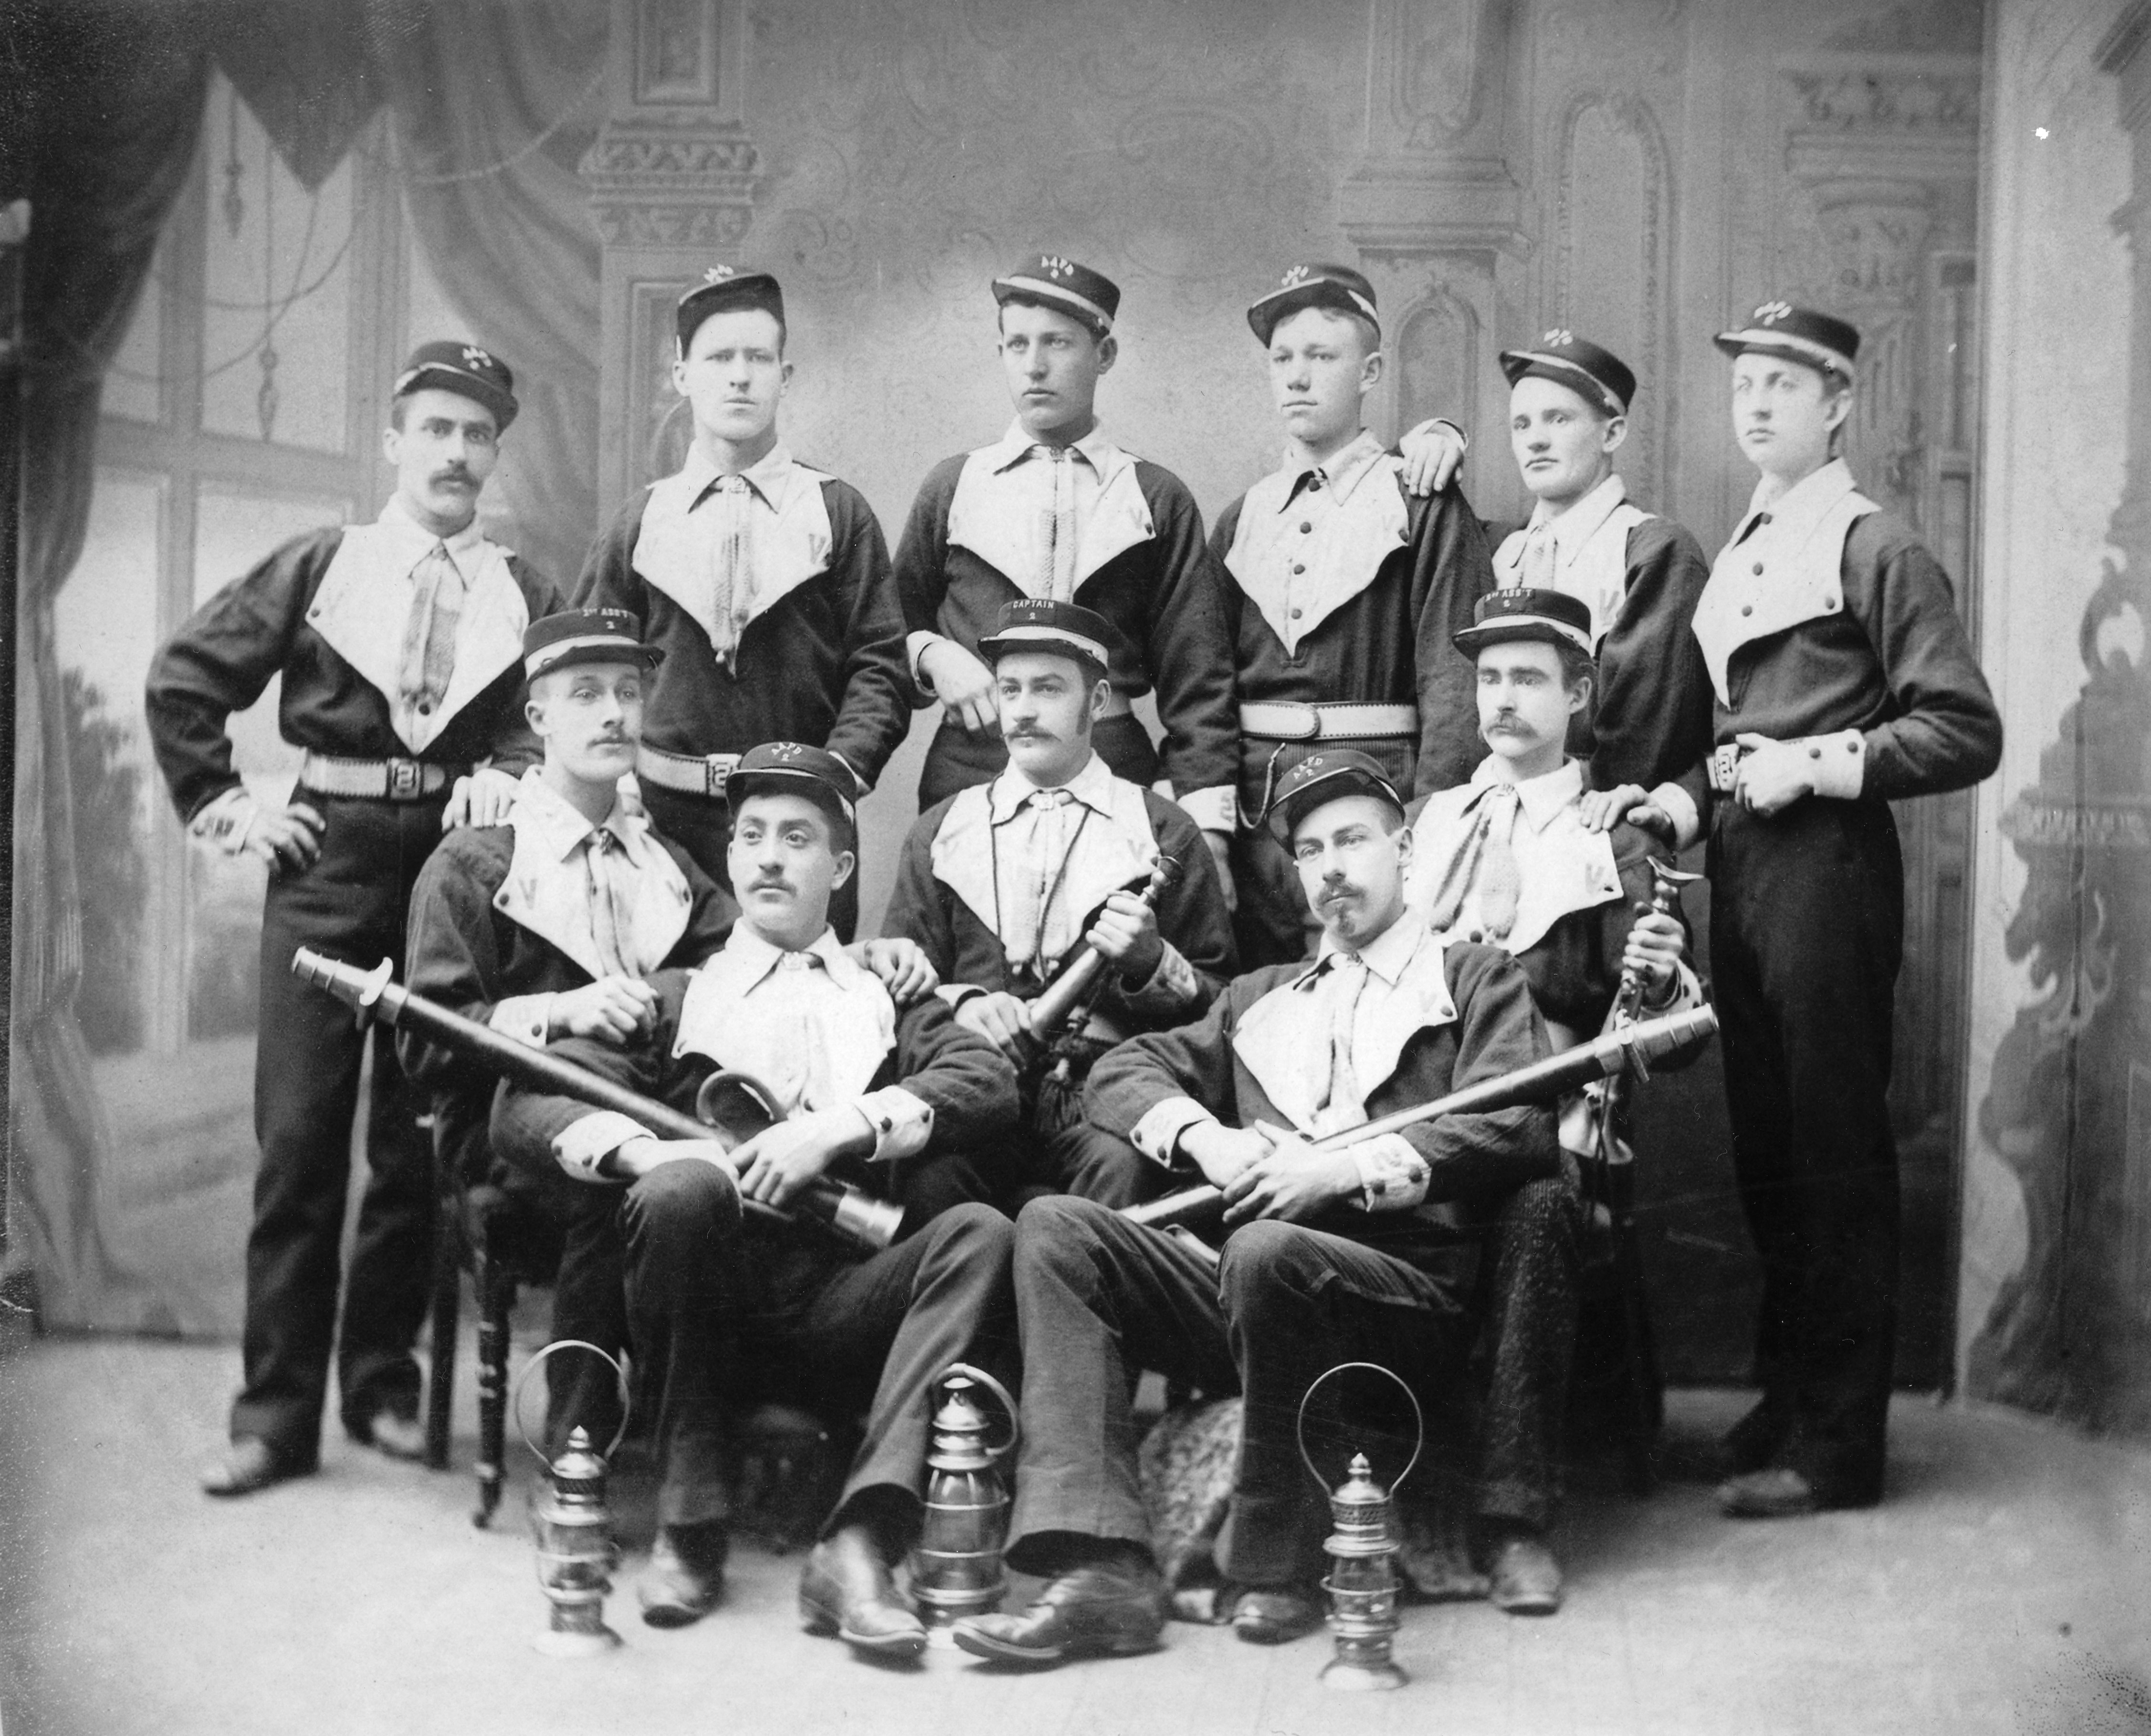 Volunteers of Defiance Hook & Ladder Company, 1877 image